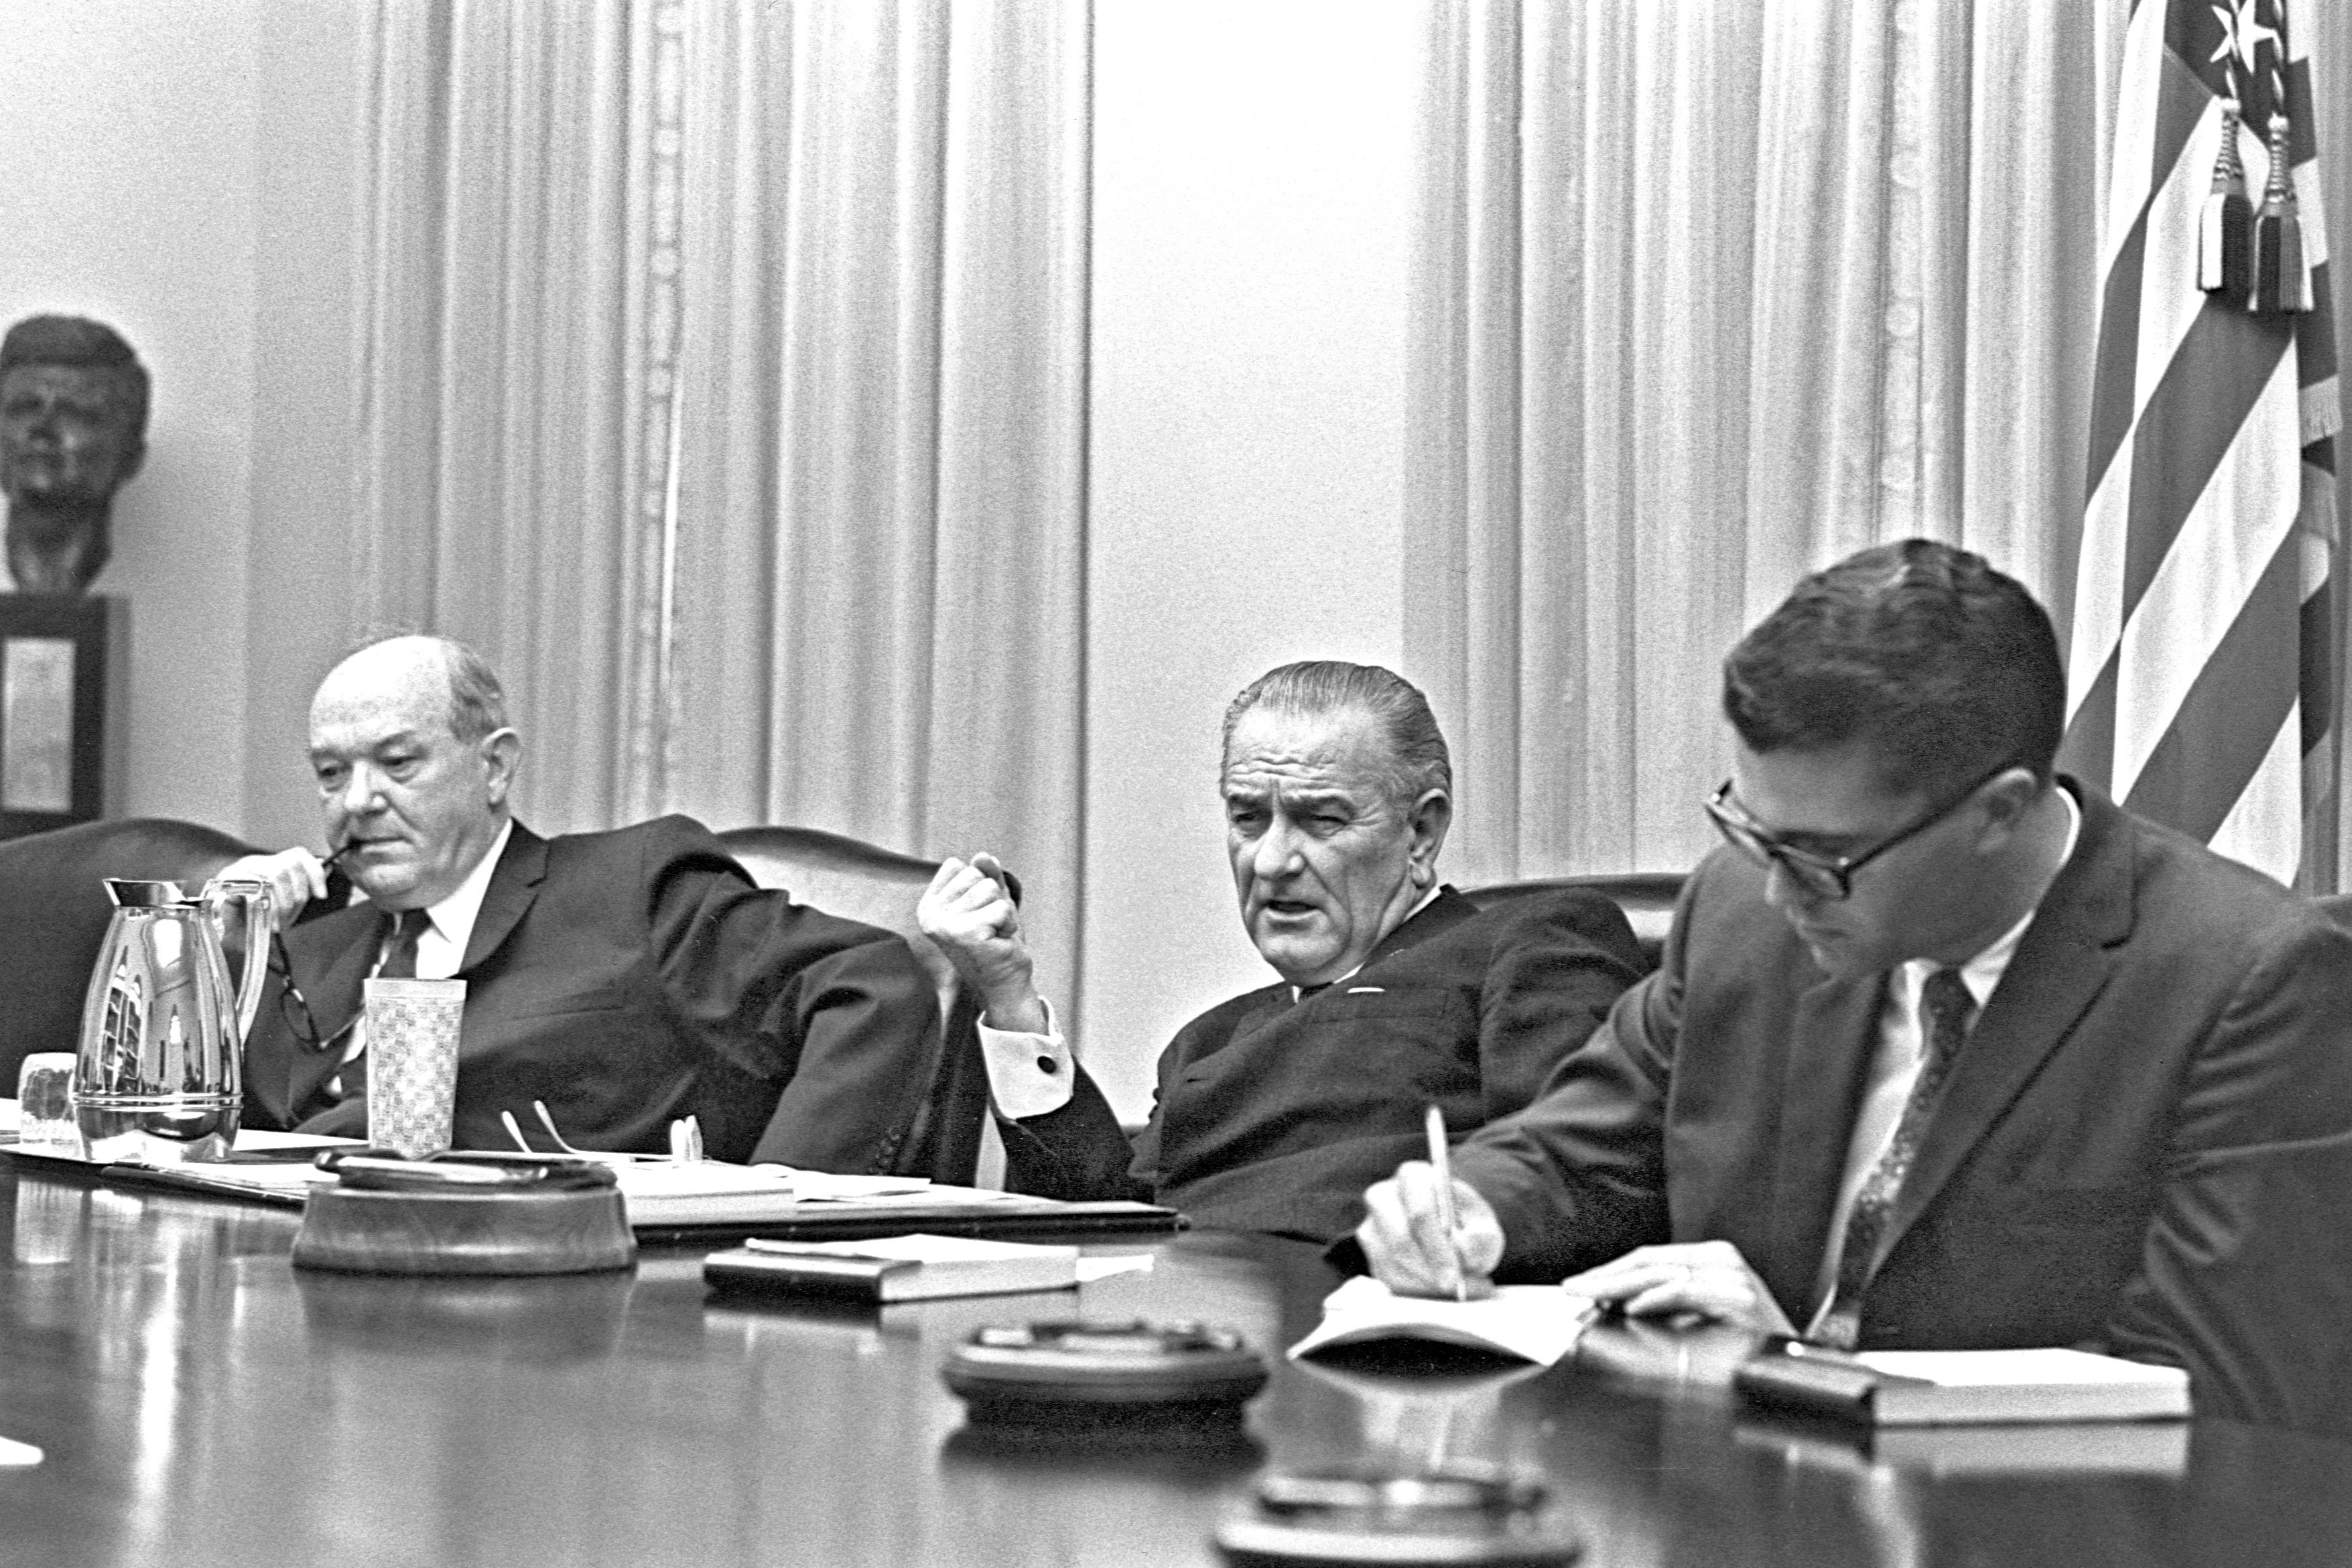 President Lyndon B. Johnson discusses Vietnam with Congress and advisers.